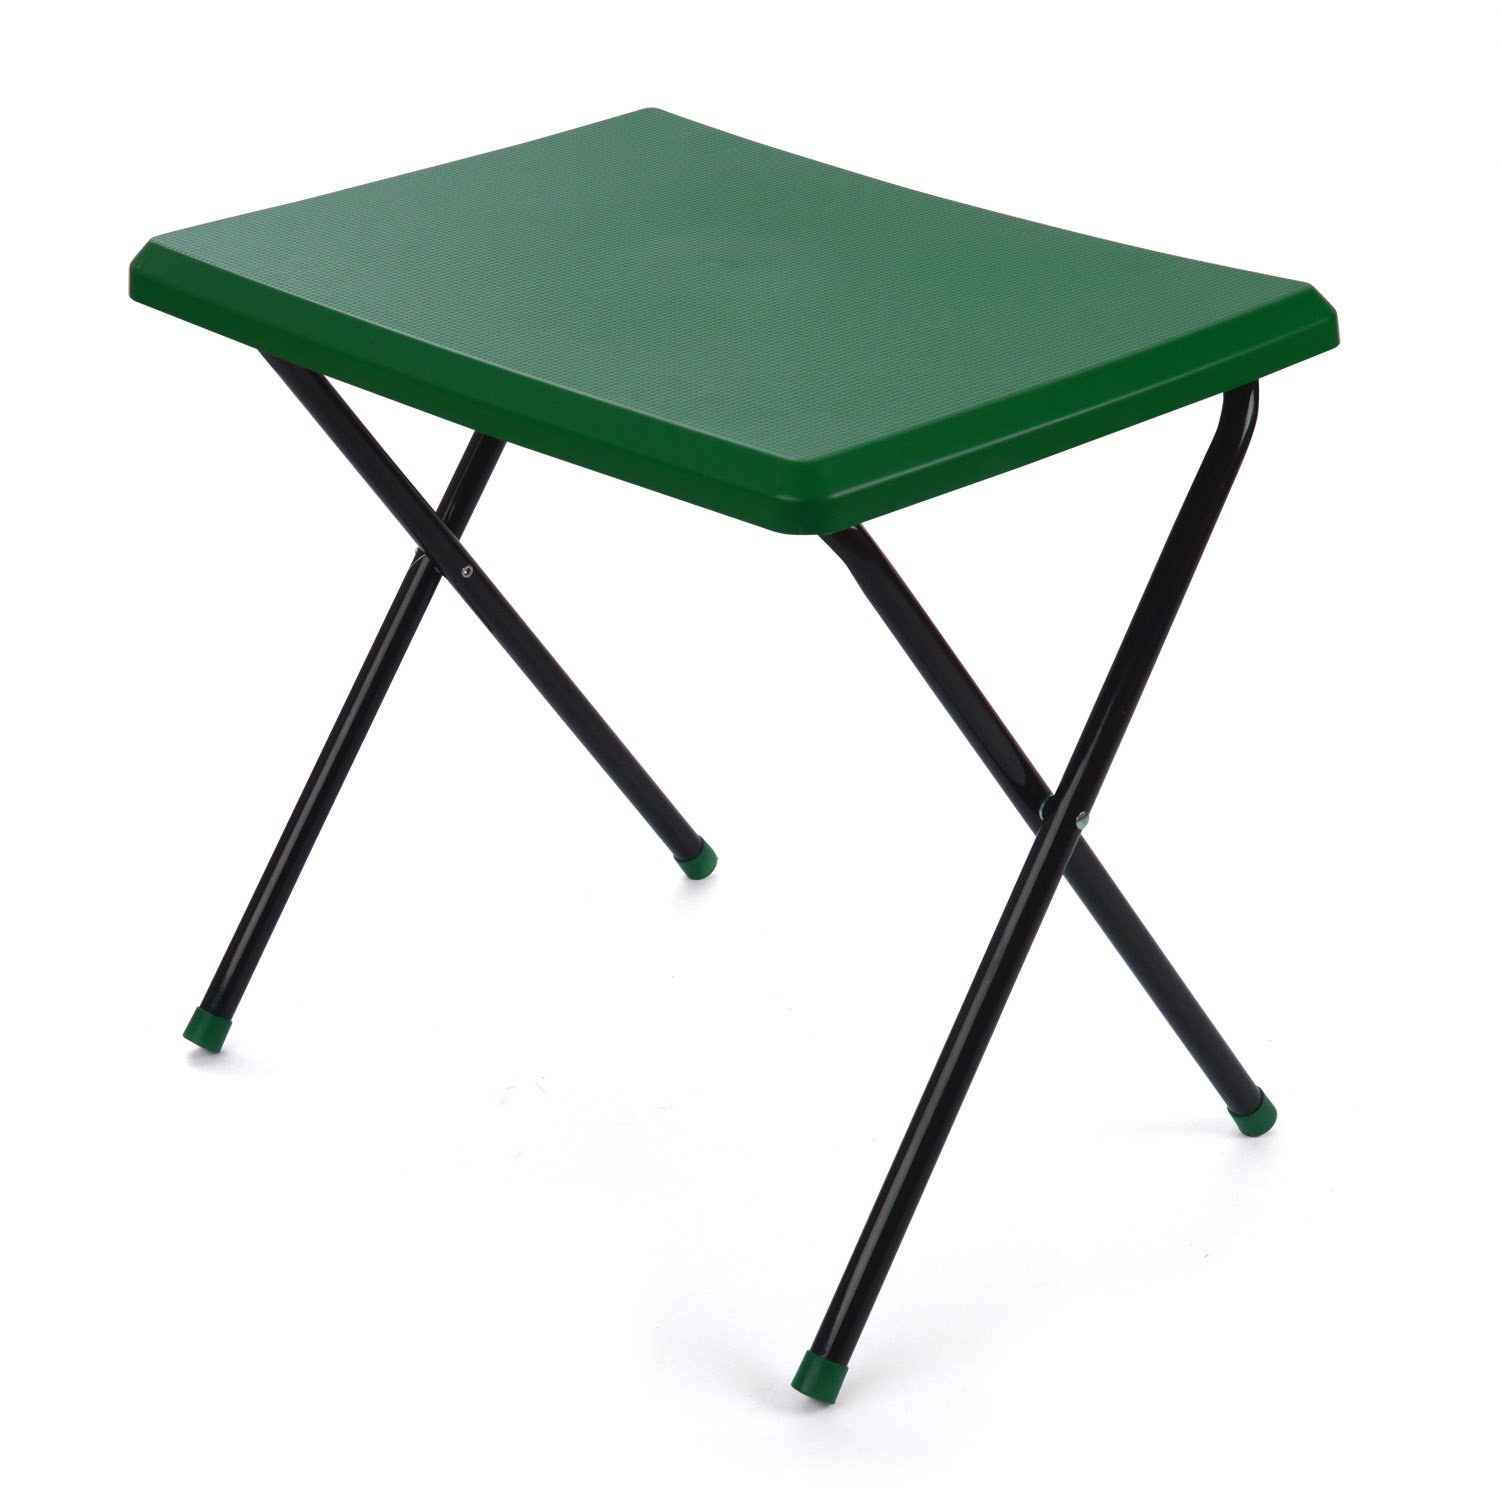 Trail Compact Folding Camping Table B-OL0124